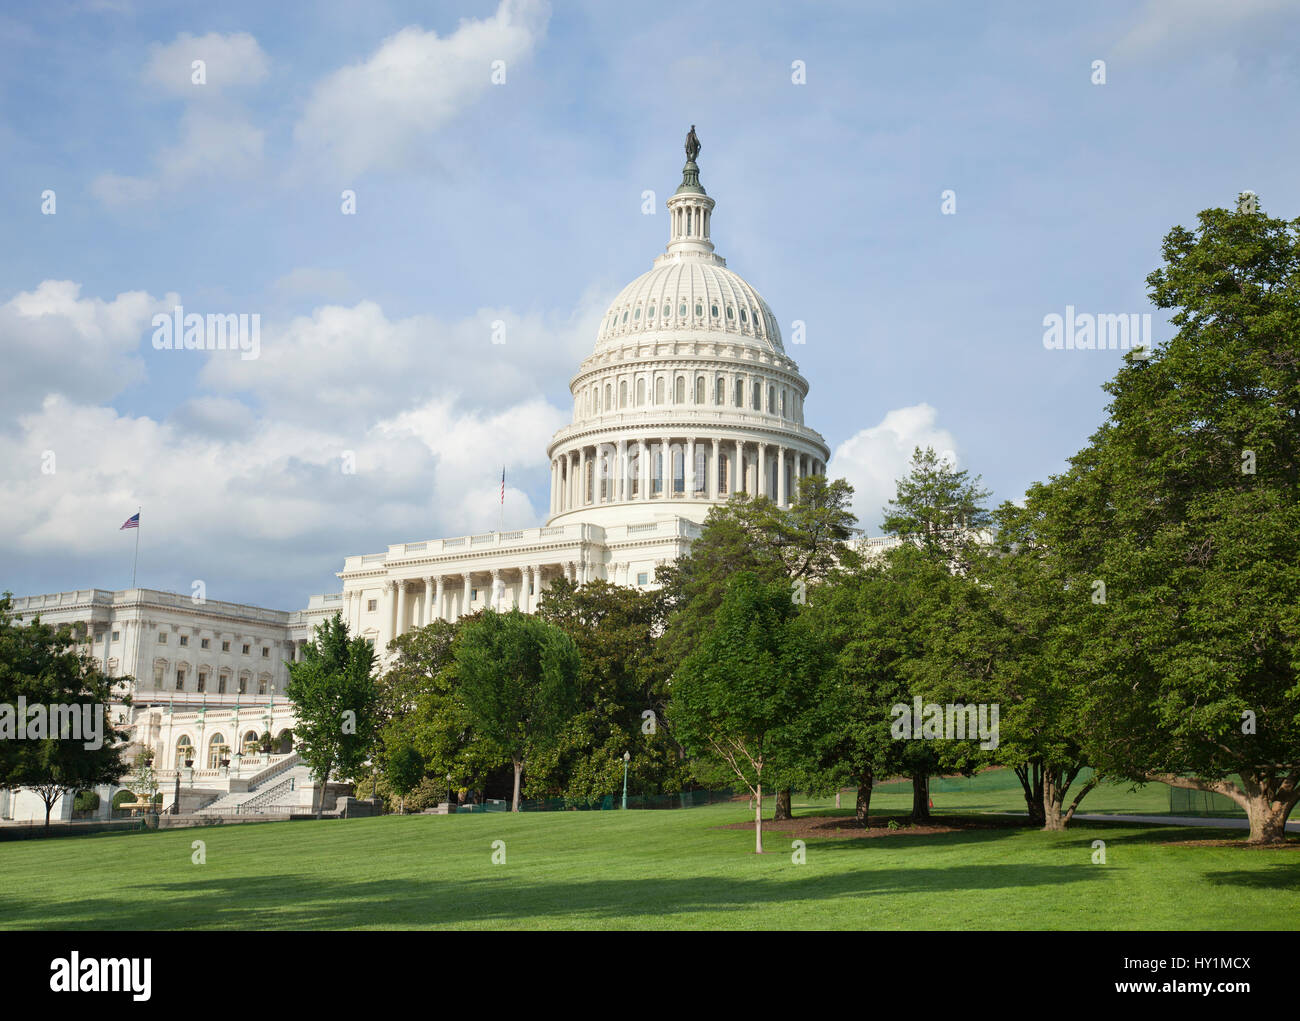 The US Capitol building in Washington DC gleams in the afternoon sun - Stock Image